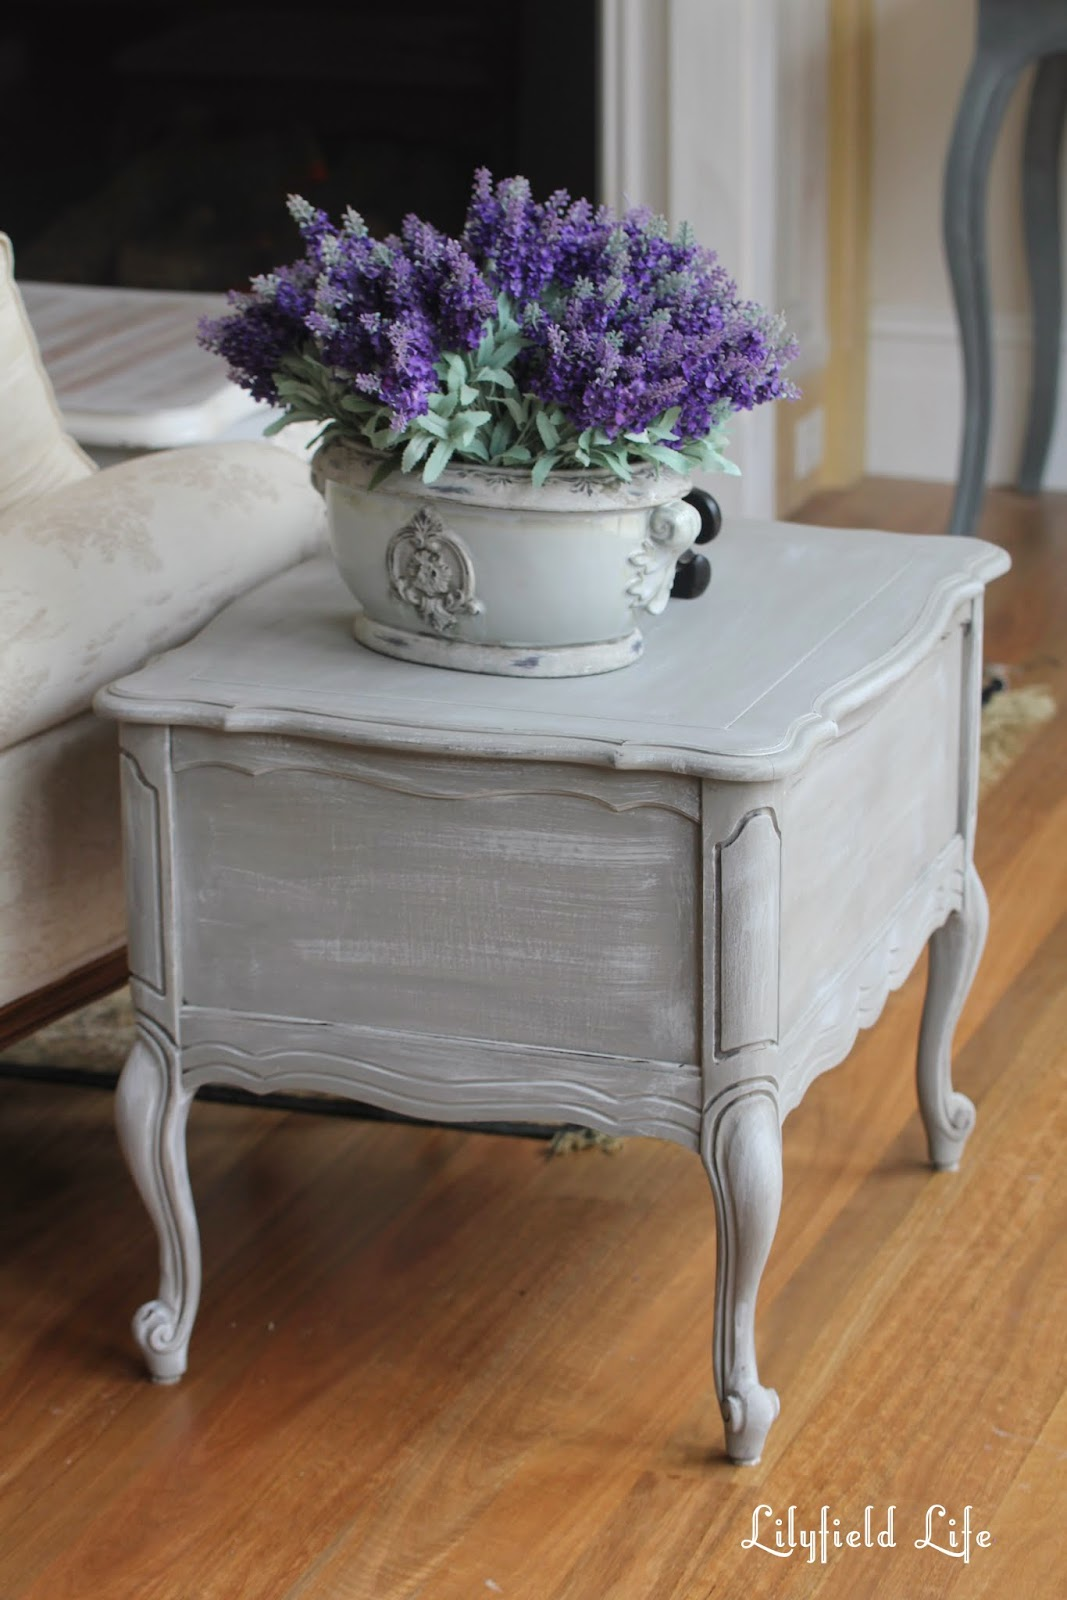 Restoration hardware weathered finish on a french style lamp table by Lilyfield life